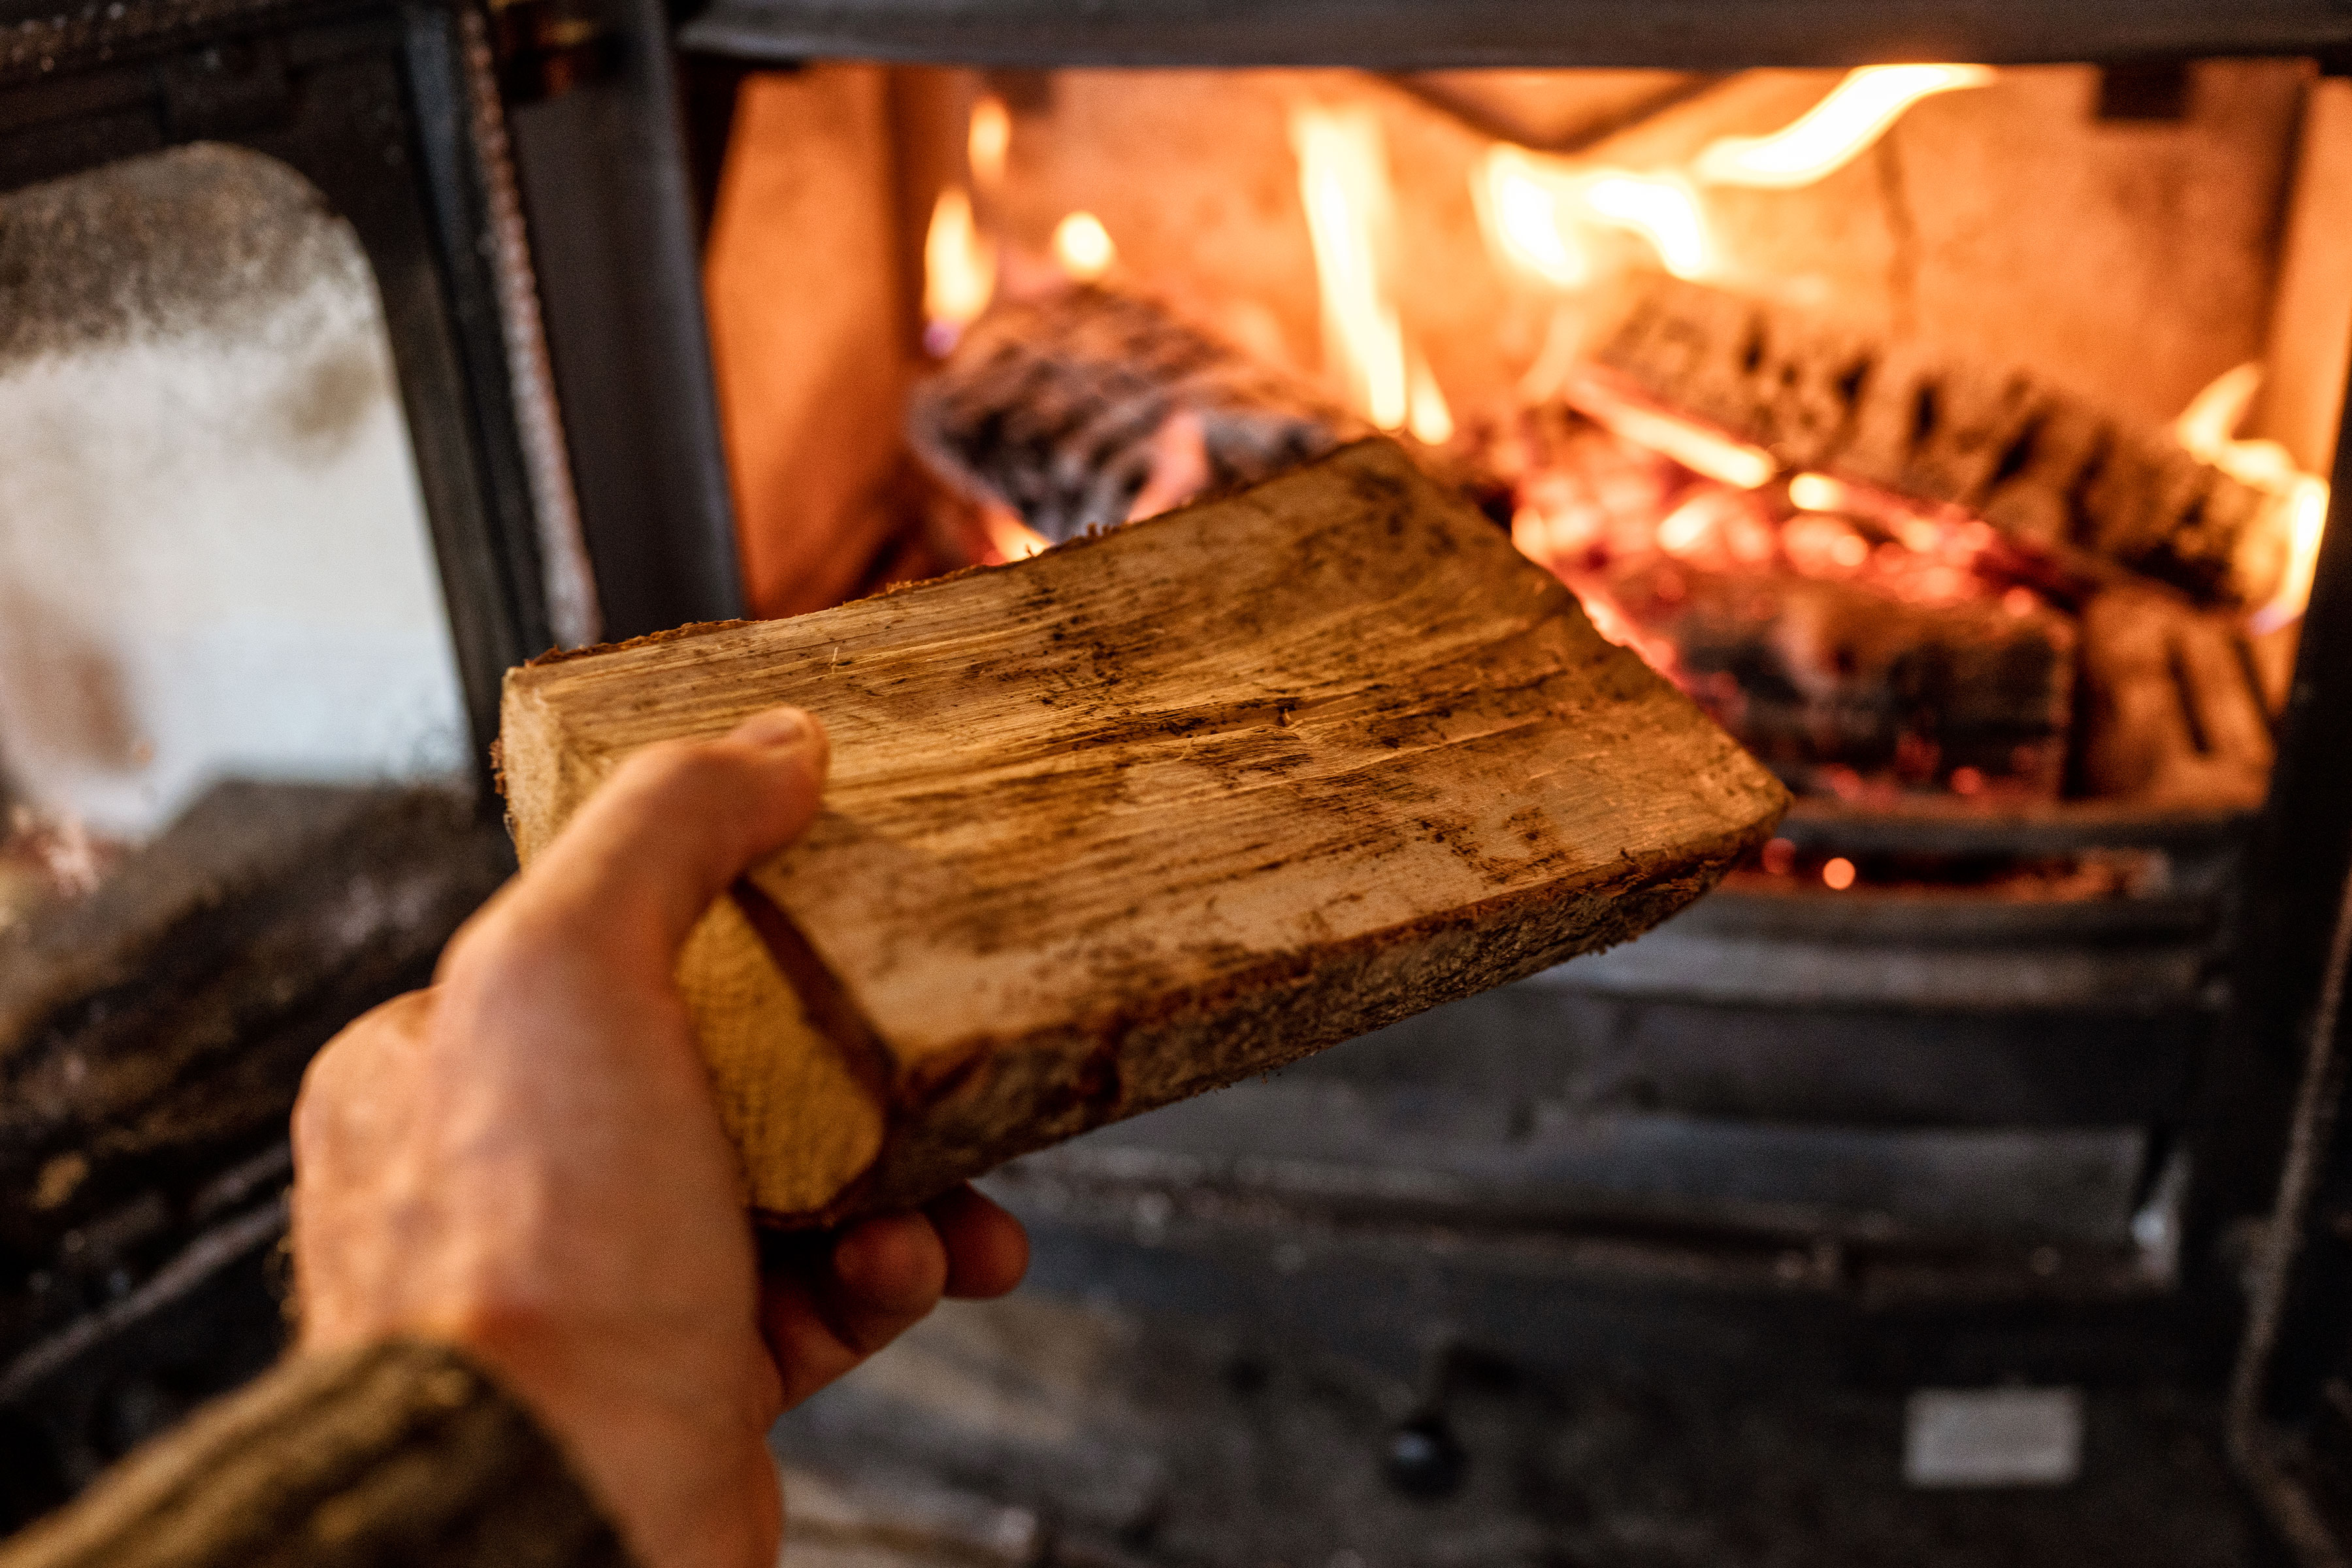 A hand placing a cut pice of wood into a lit wood burning stove.